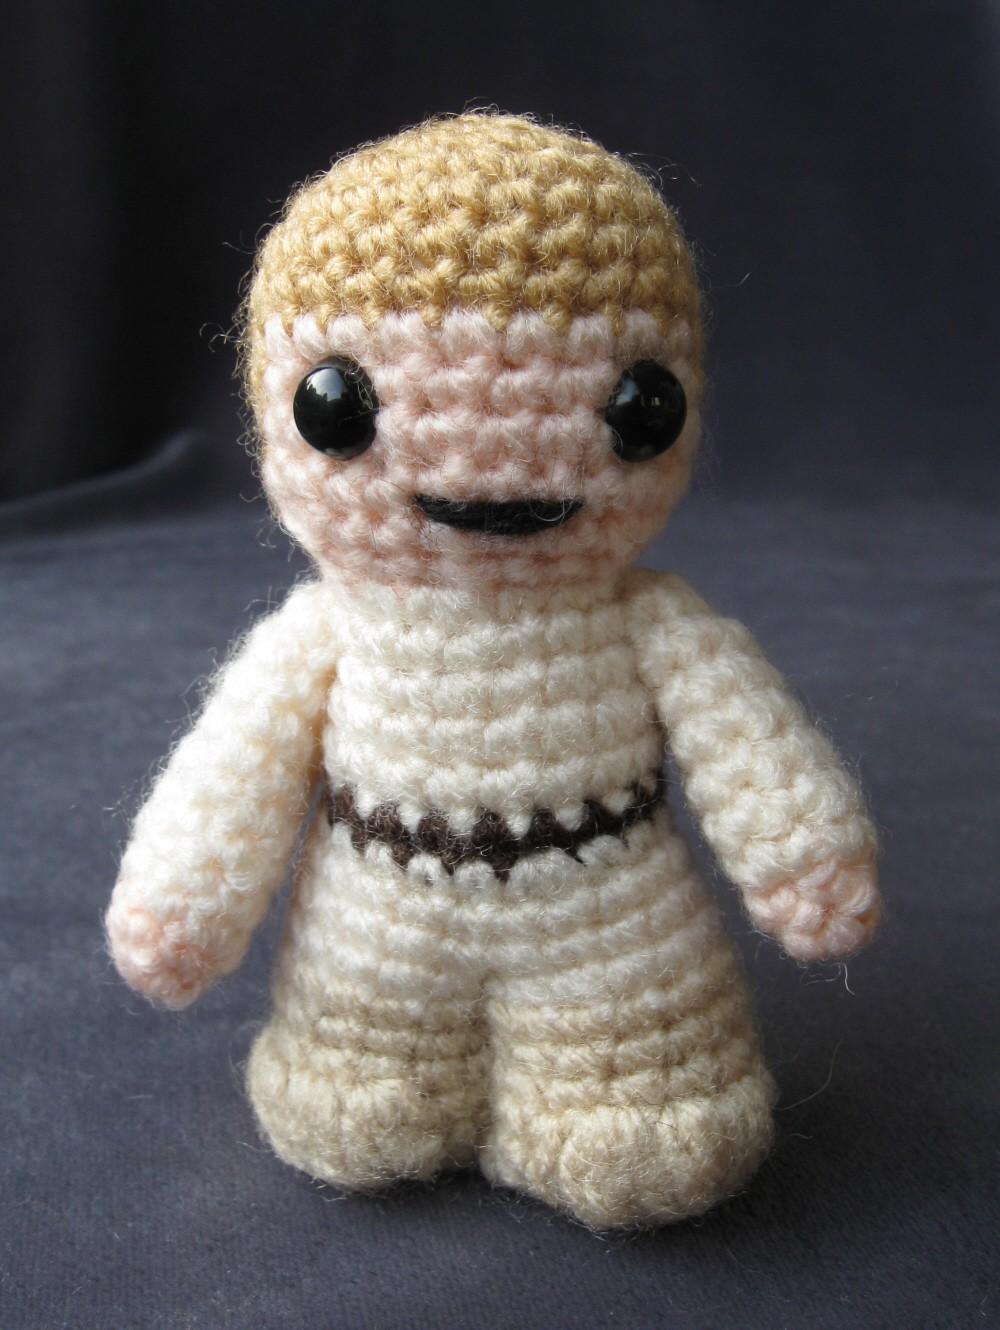 Amigurumi Sewing Machine Pattern : Mini Star Wars Amigurumi Cuddly Is Finally Cool